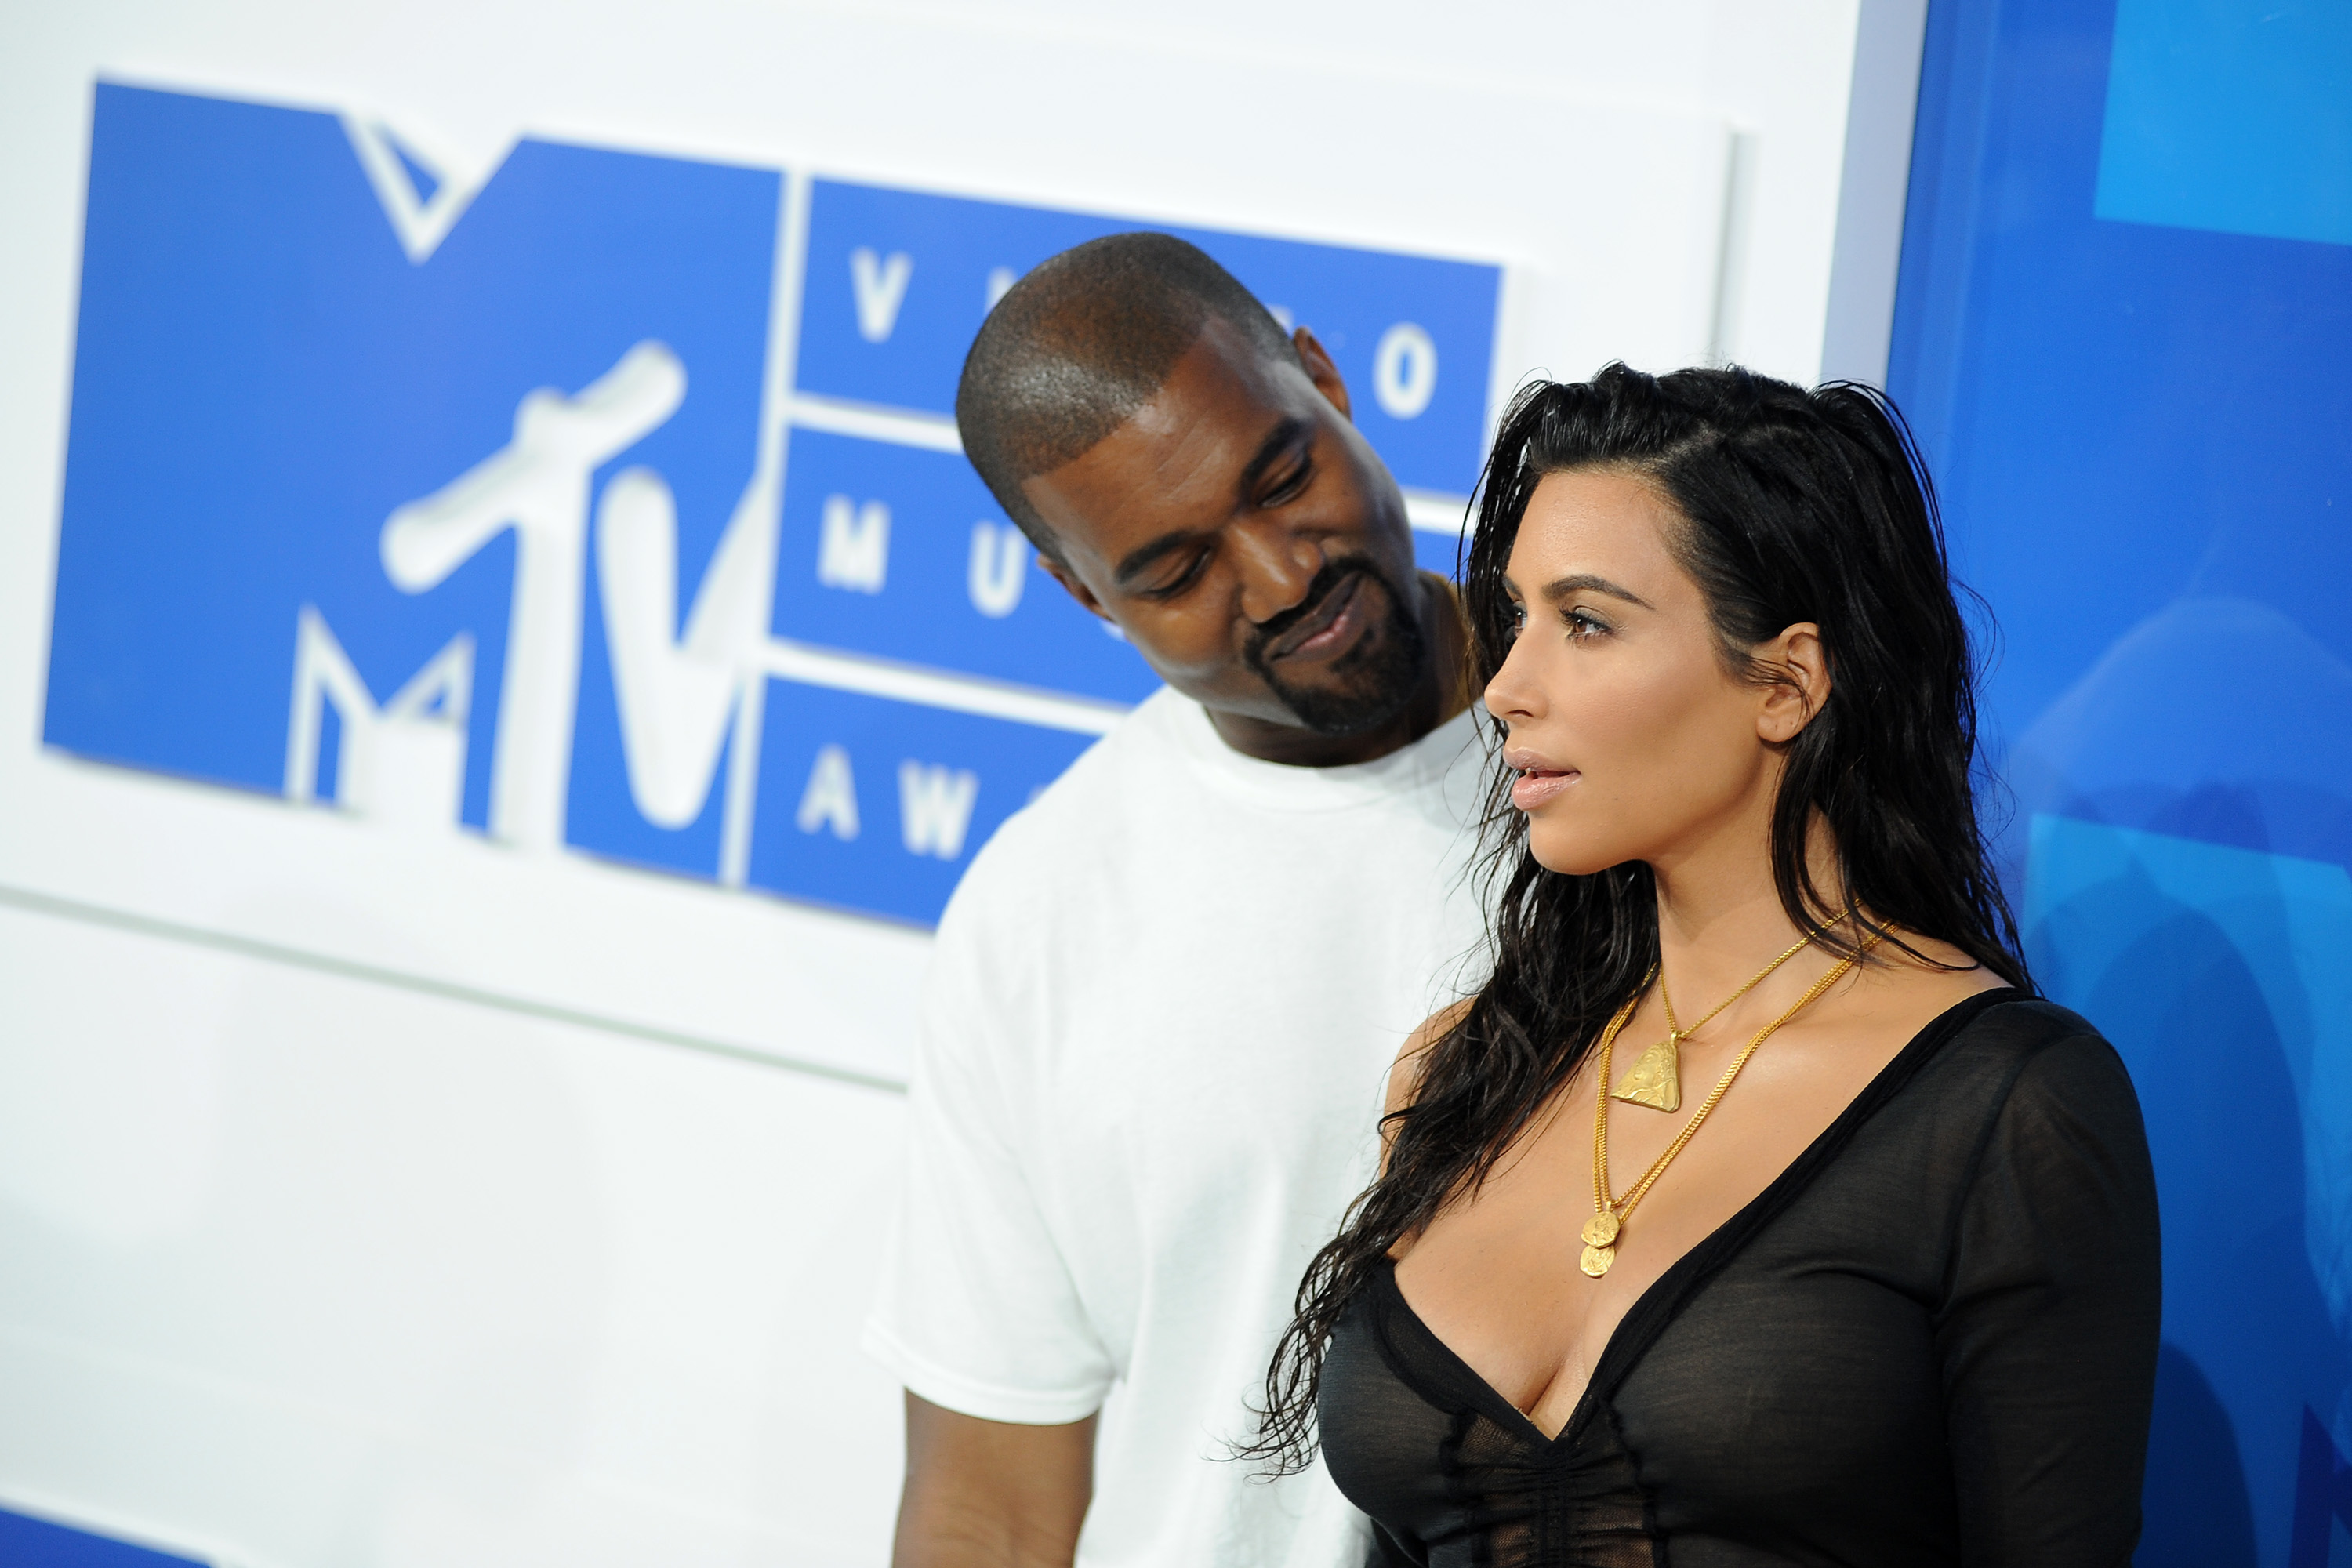 2016 MTV Video Music Awards - Red Carpet Arrivals  Featuring: Kanye West, Kim Kardashian Where: New York, New York, United States When: 29 Aug 2016 Credit: Ivan Nikolov/WENN.com